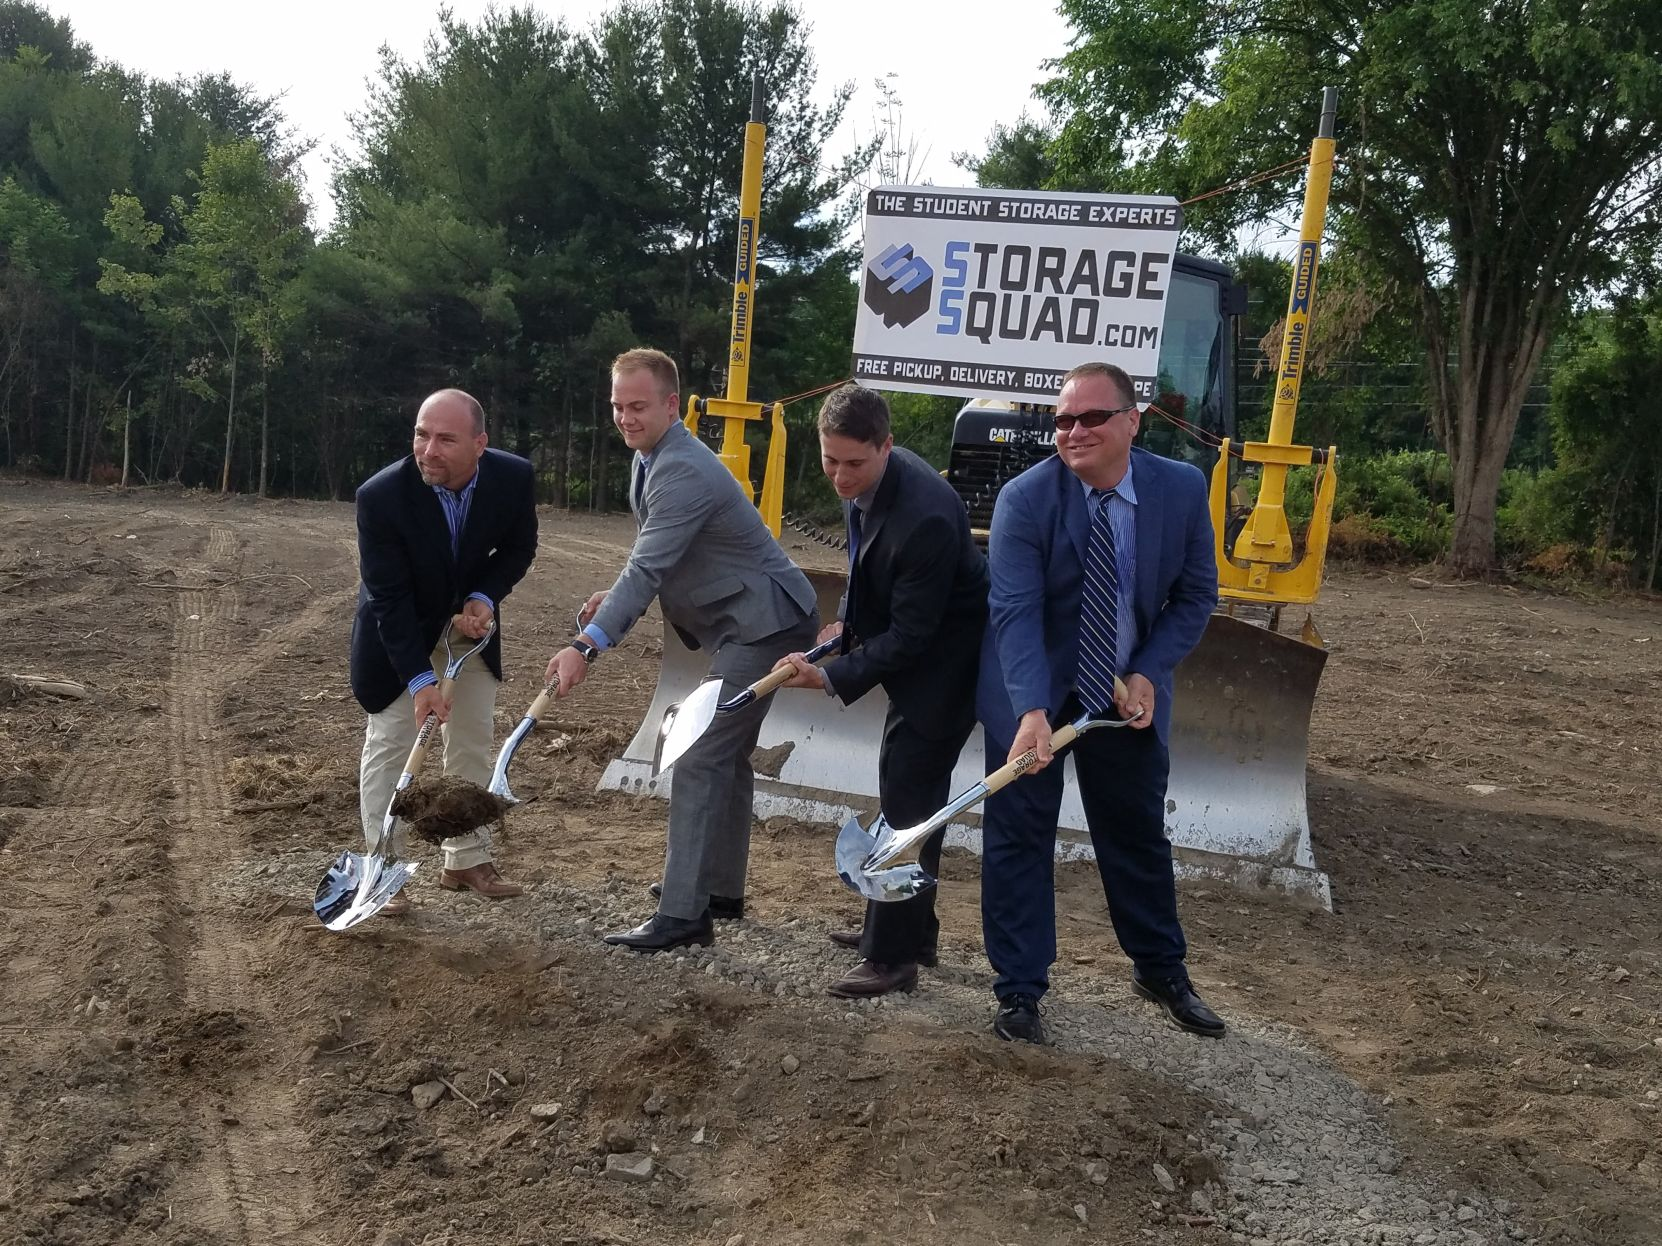 ... Co Founders Dan Hagberg And Nick Huber; And Tim Huber Break Ground On  The Property In Dryden For Storage Squadu0027s First Self Service Storage ...